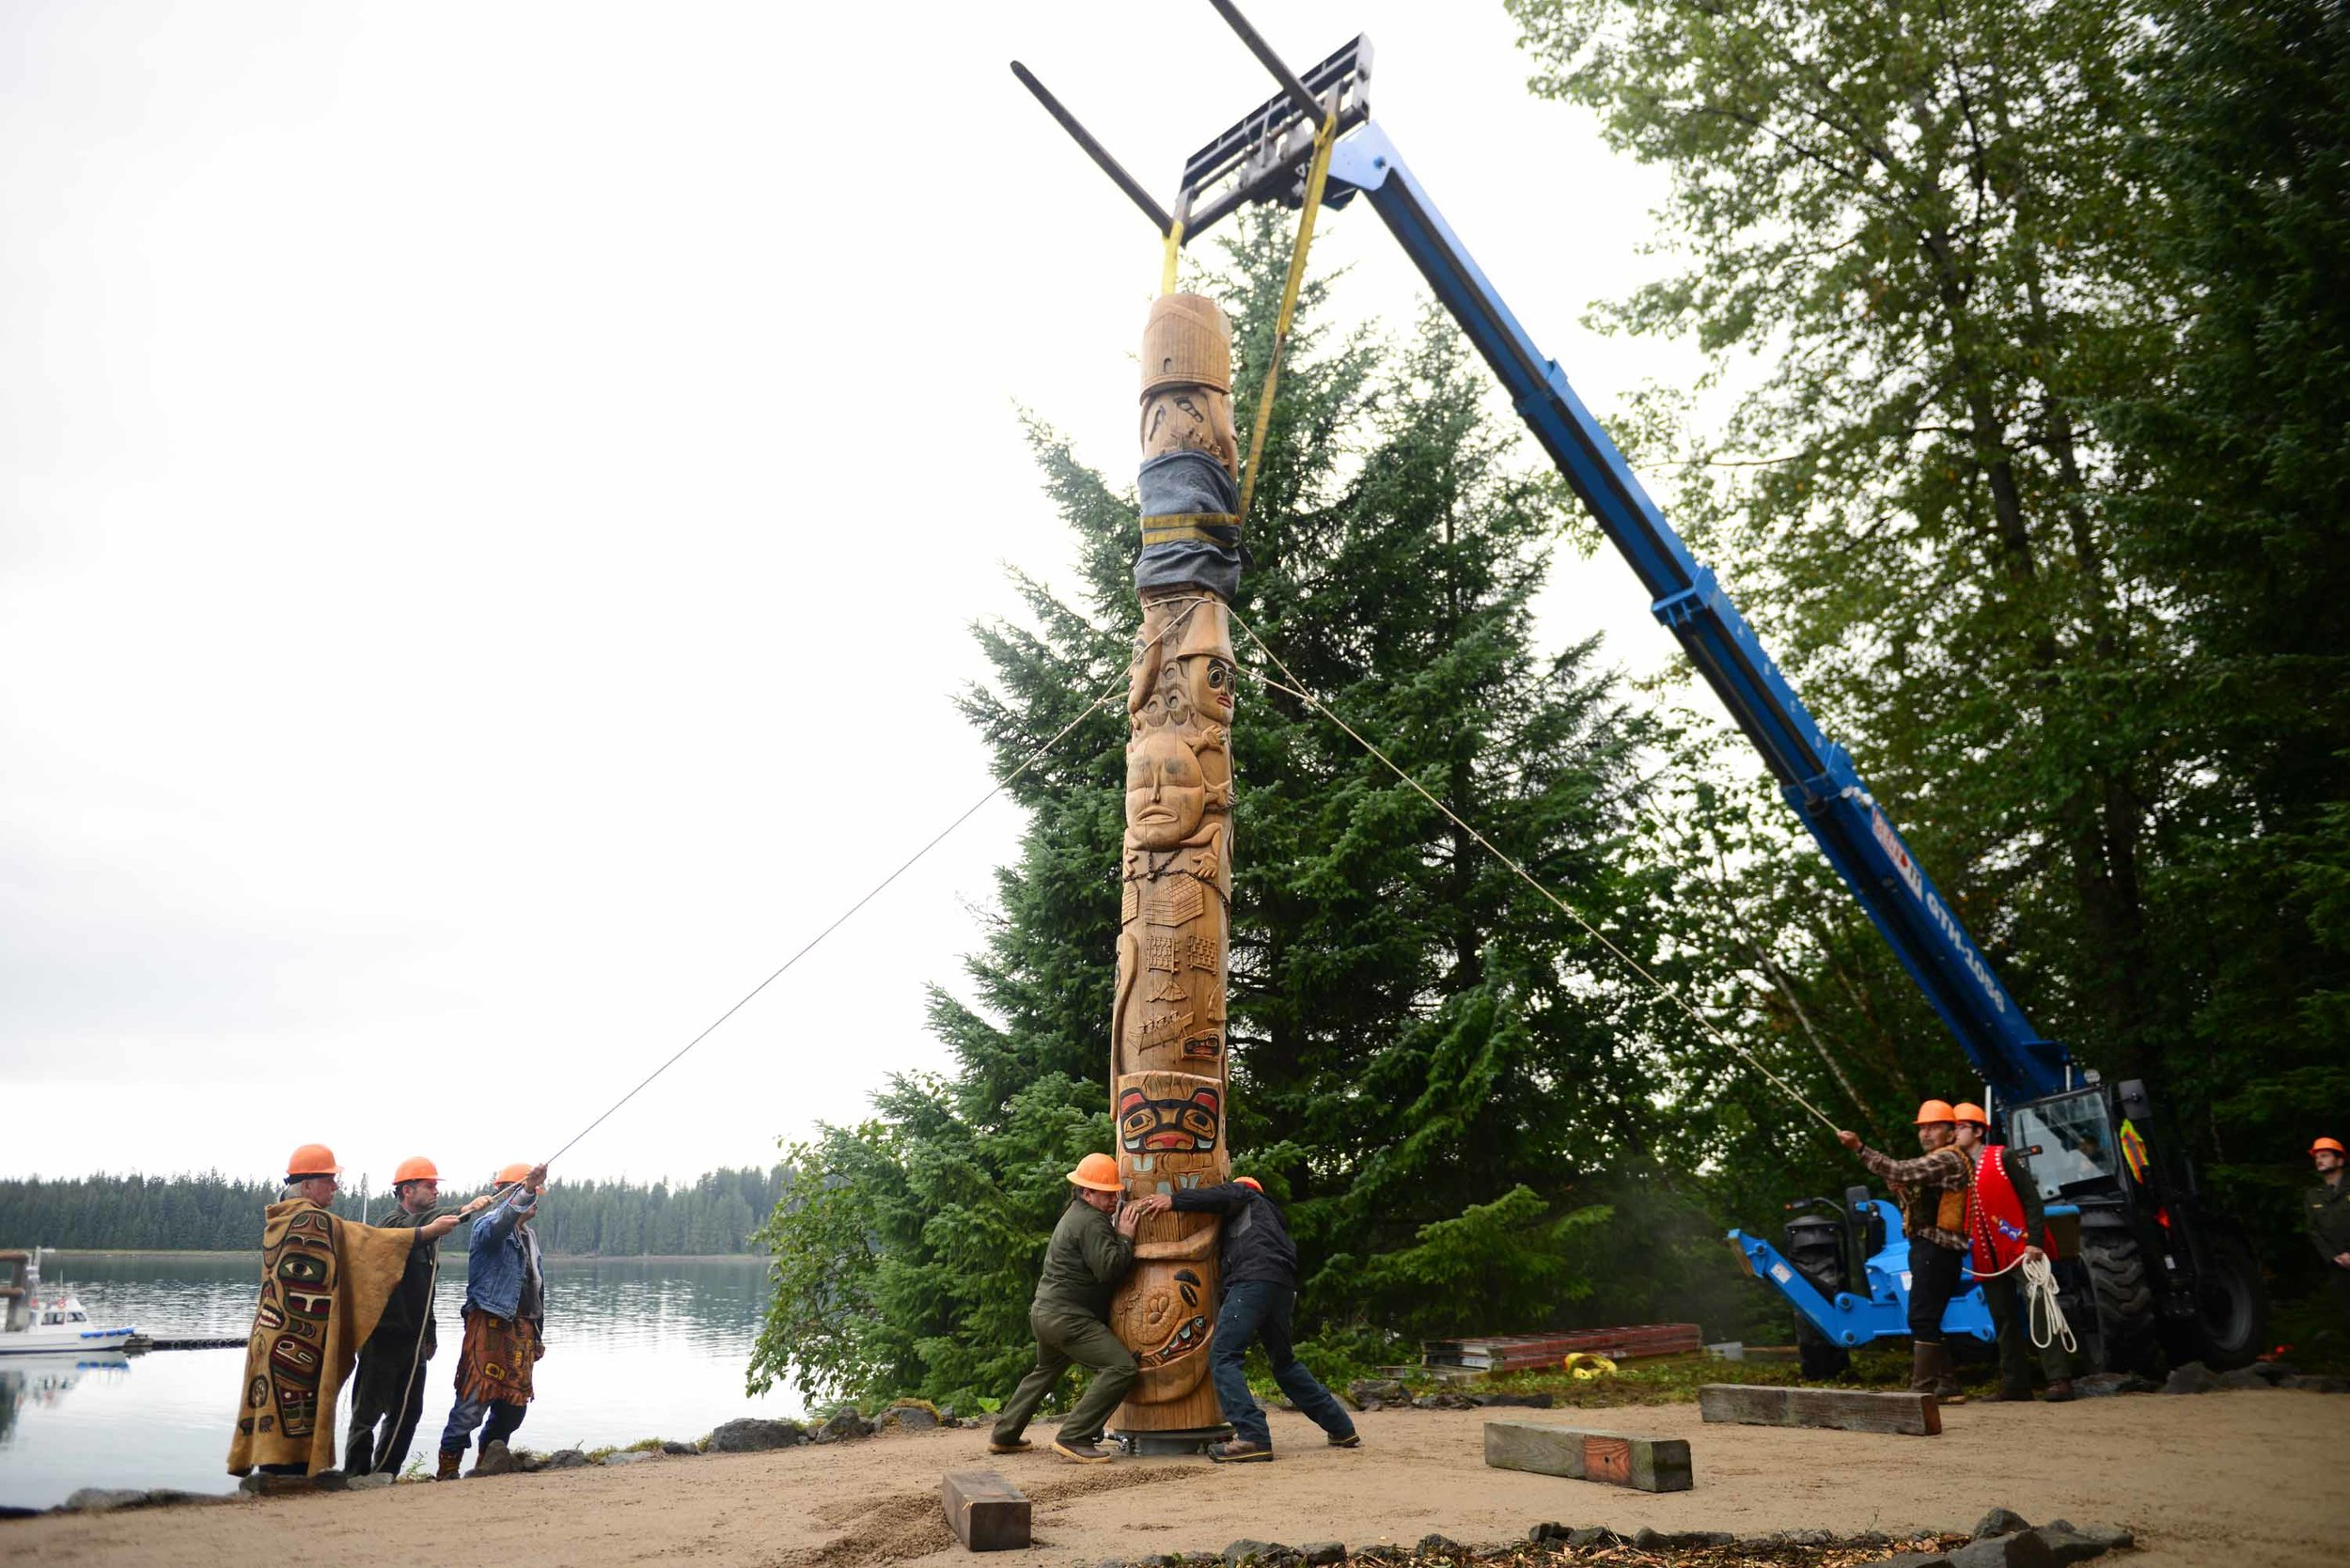 A healing pole is erected in Bartlett Cove in Glacier Bay National Park, representing a new chapter in the relationship between the National Park Service and the Tlingit people, who worked collaboratively to build a new clan house in the Cove, prioritizing the area's cultural significance and restoring access to its descendants. The Huna Tlingit were pushed out of the their traditional homelands by advancing glaciers during the Little Ice Age of the 1700s, and kept out by federal laws as the ice receded. June 2018.